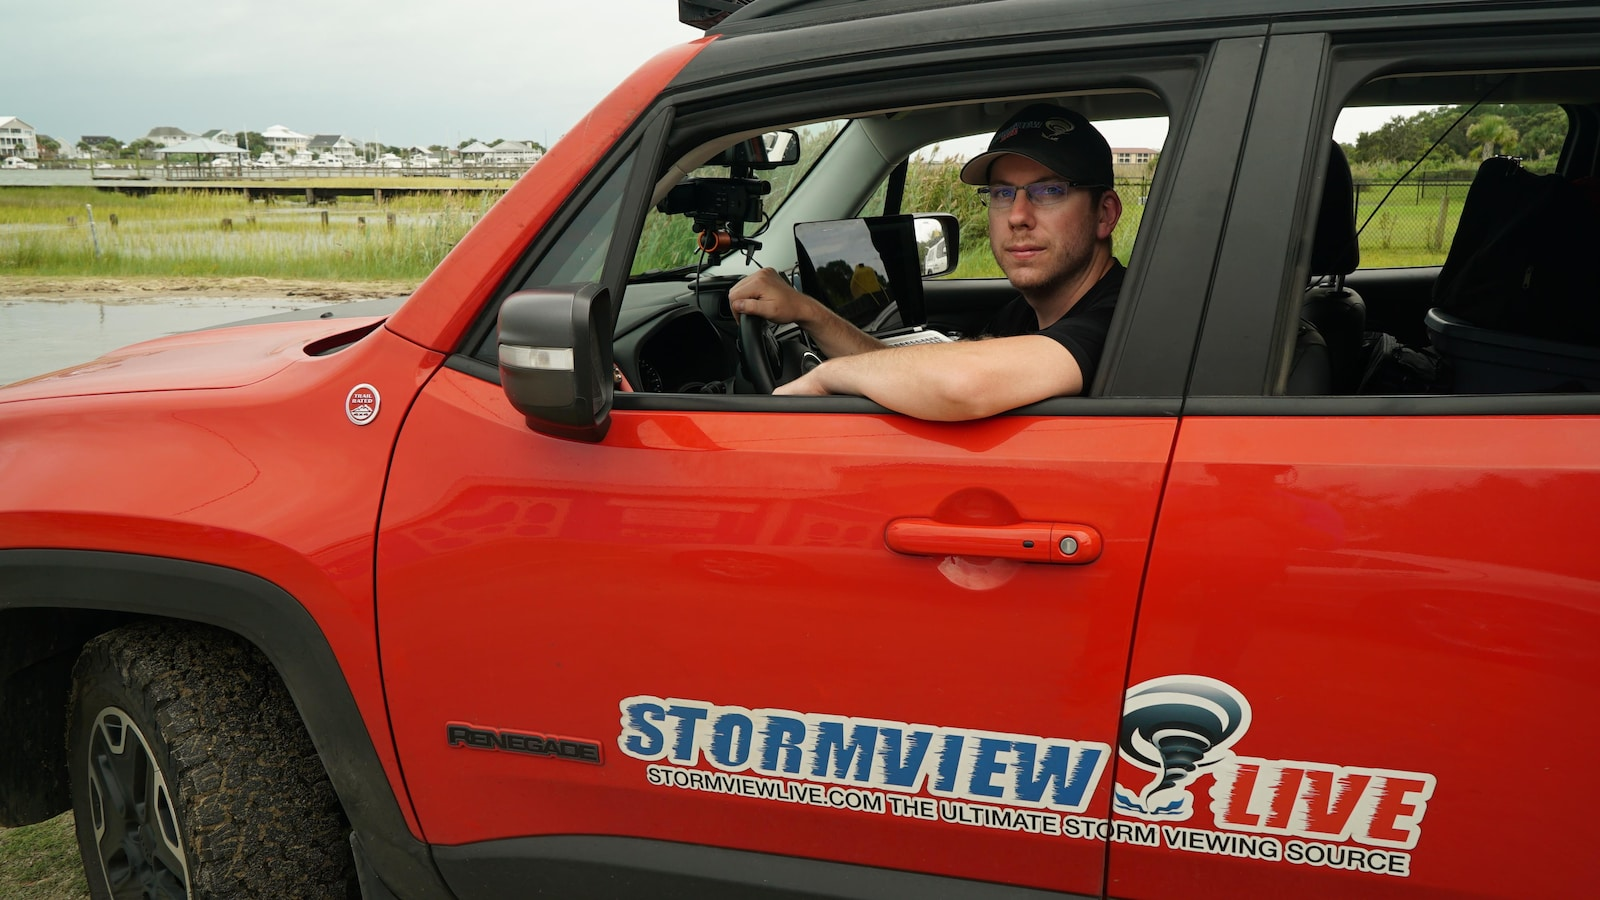 David Backster III dans sa camionnette au lettrage Stormview Live.